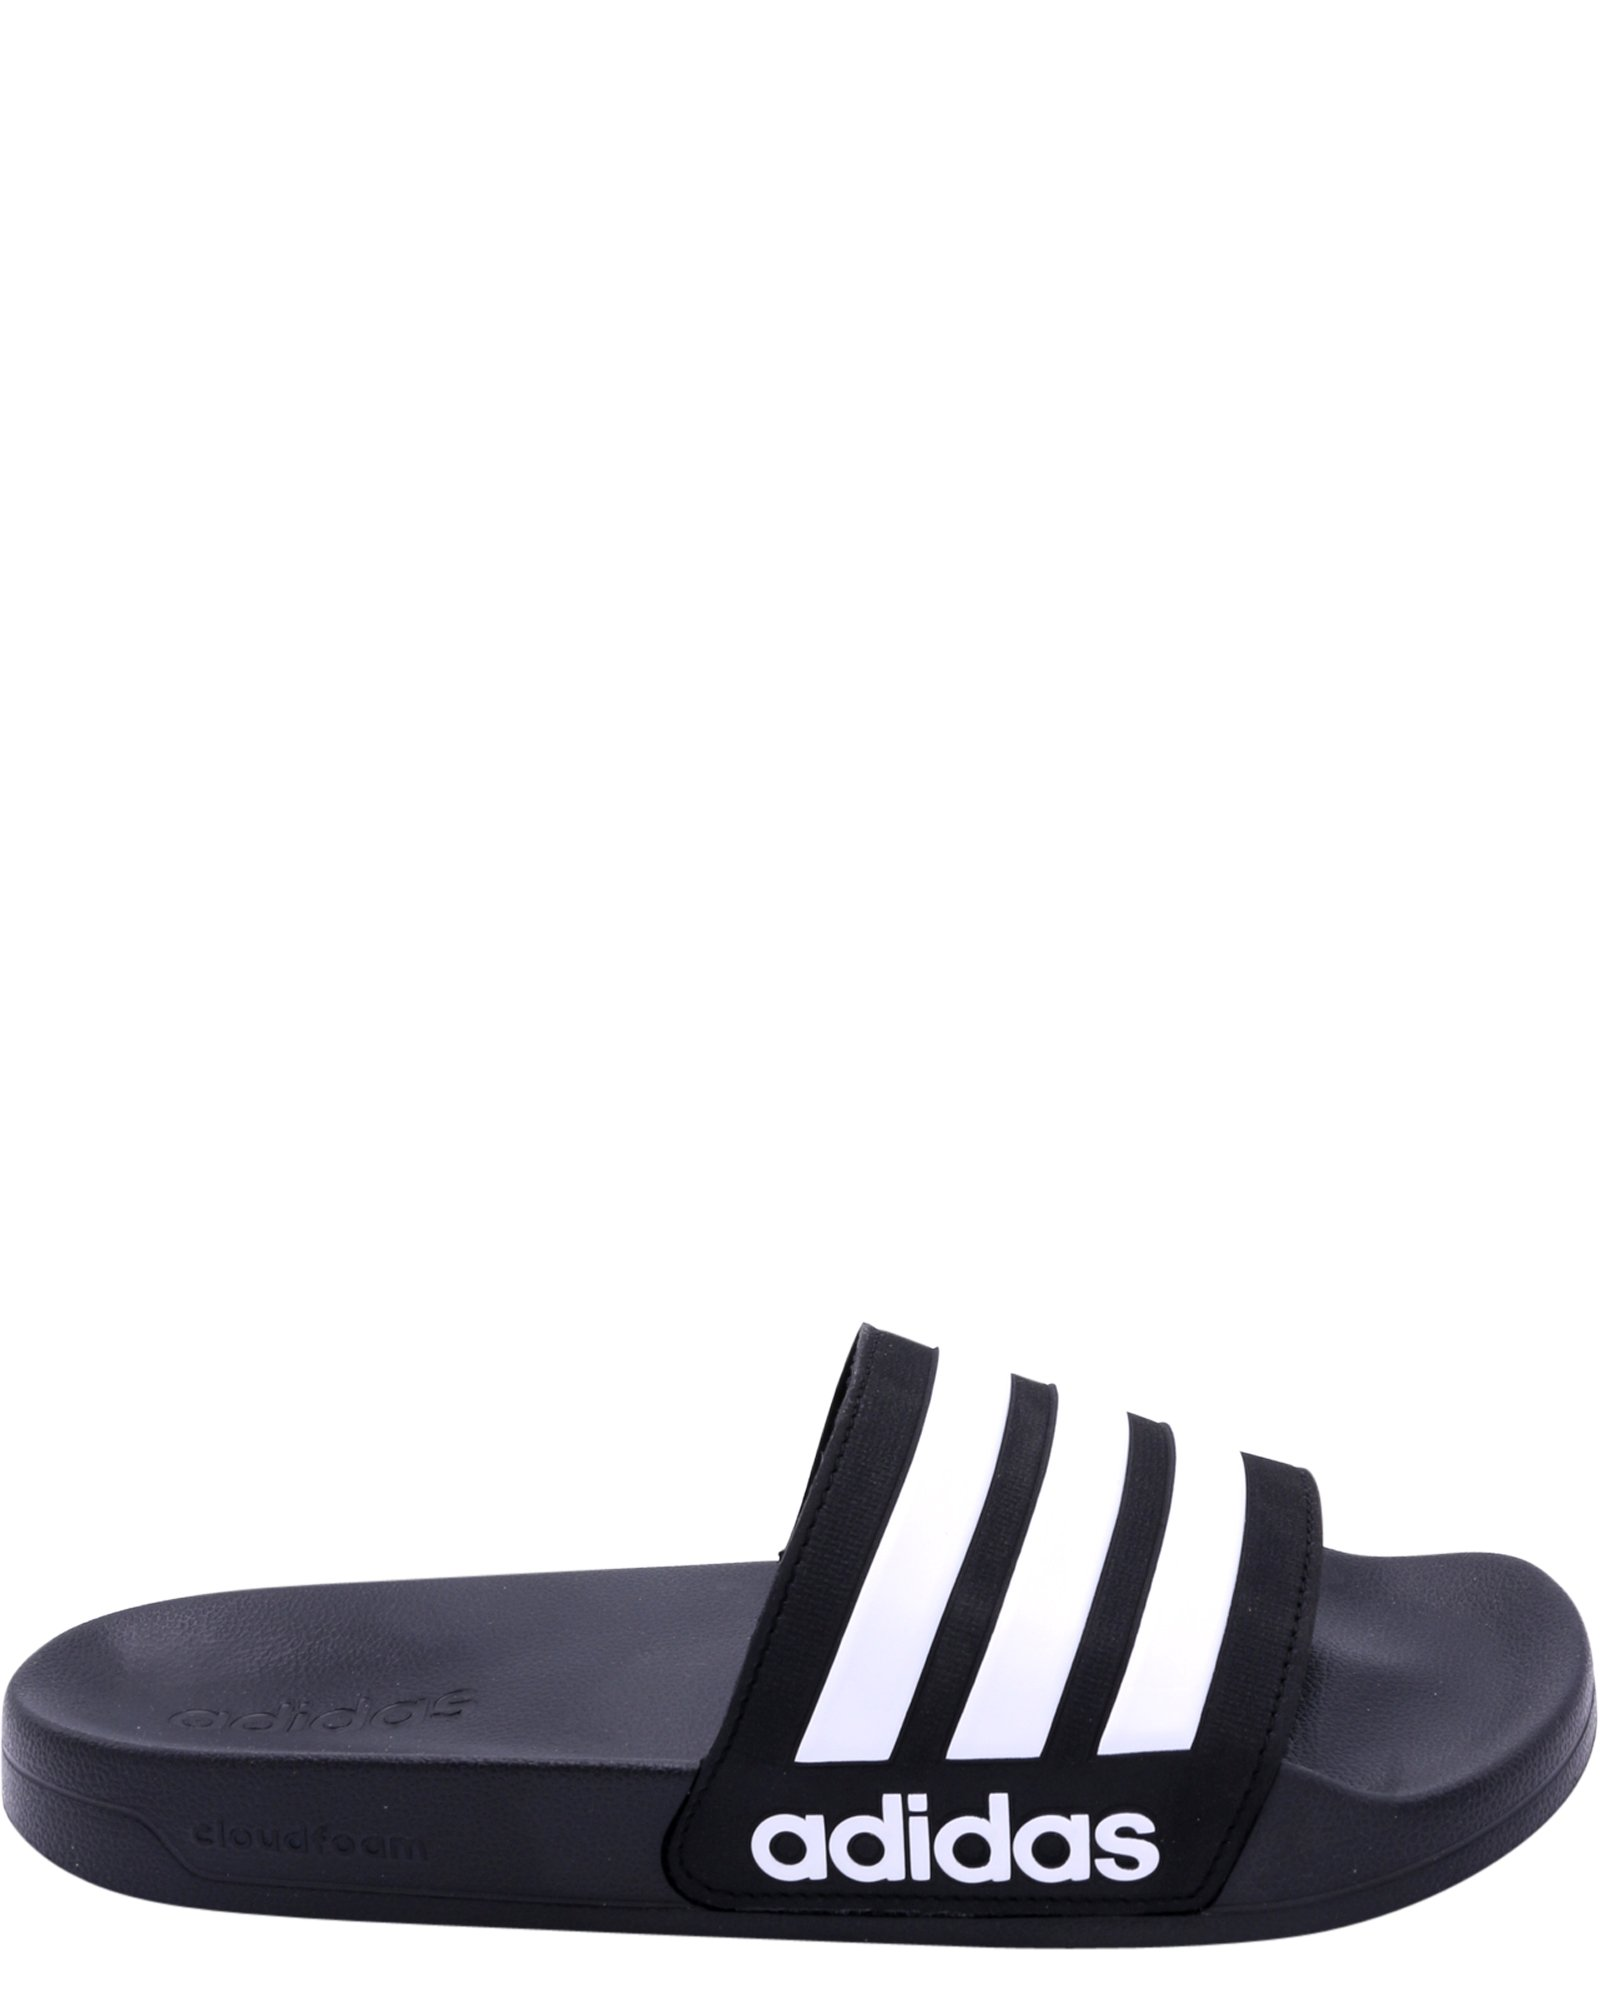 081237be11e9 Get Quotations · adidas Men s CF Adilette Slide Sandal